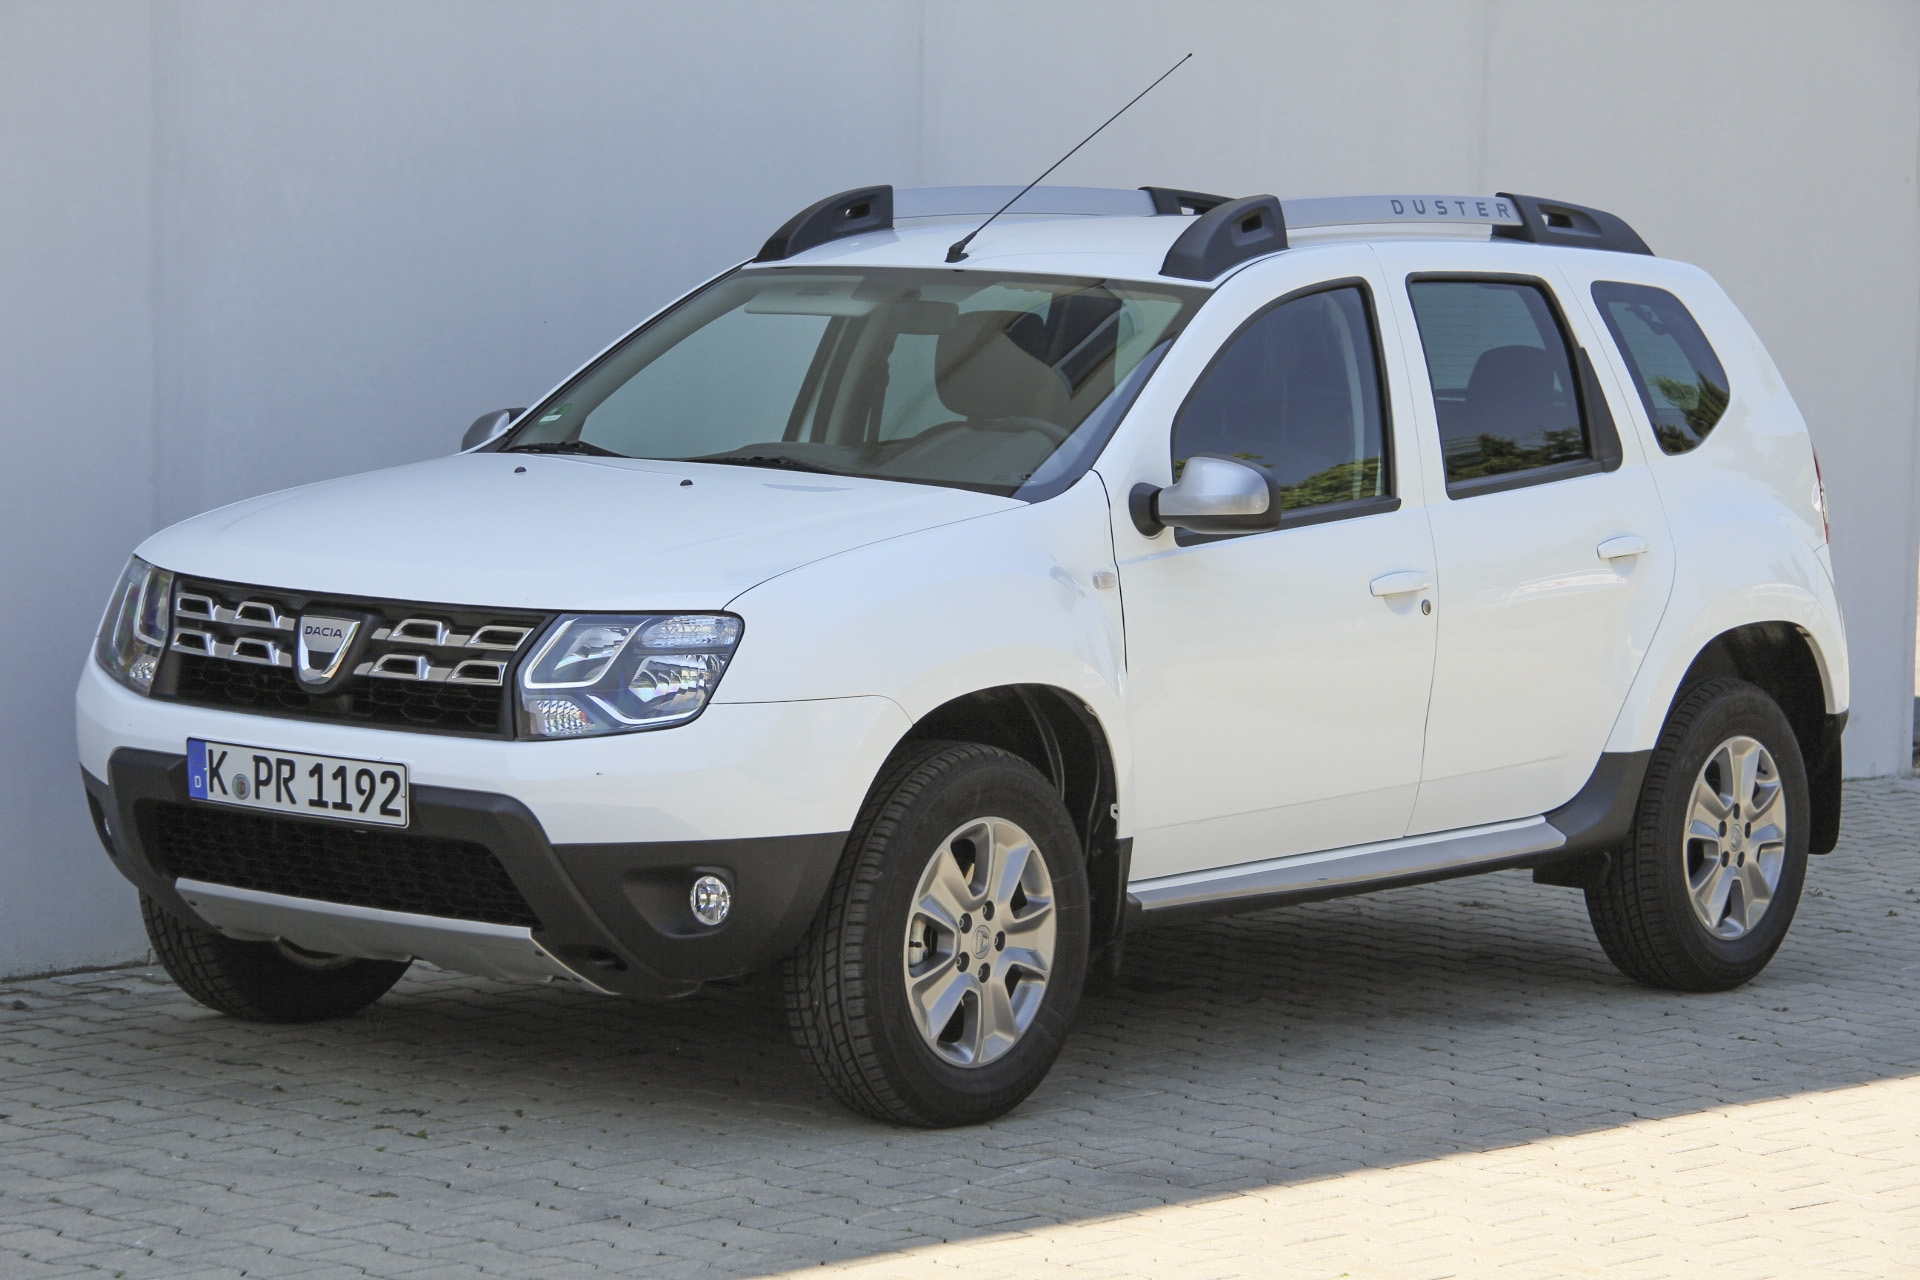 dacia duster tce 125 test prijzen en specificaties. Black Bedroom Furniture Sets. Home Design Ideas